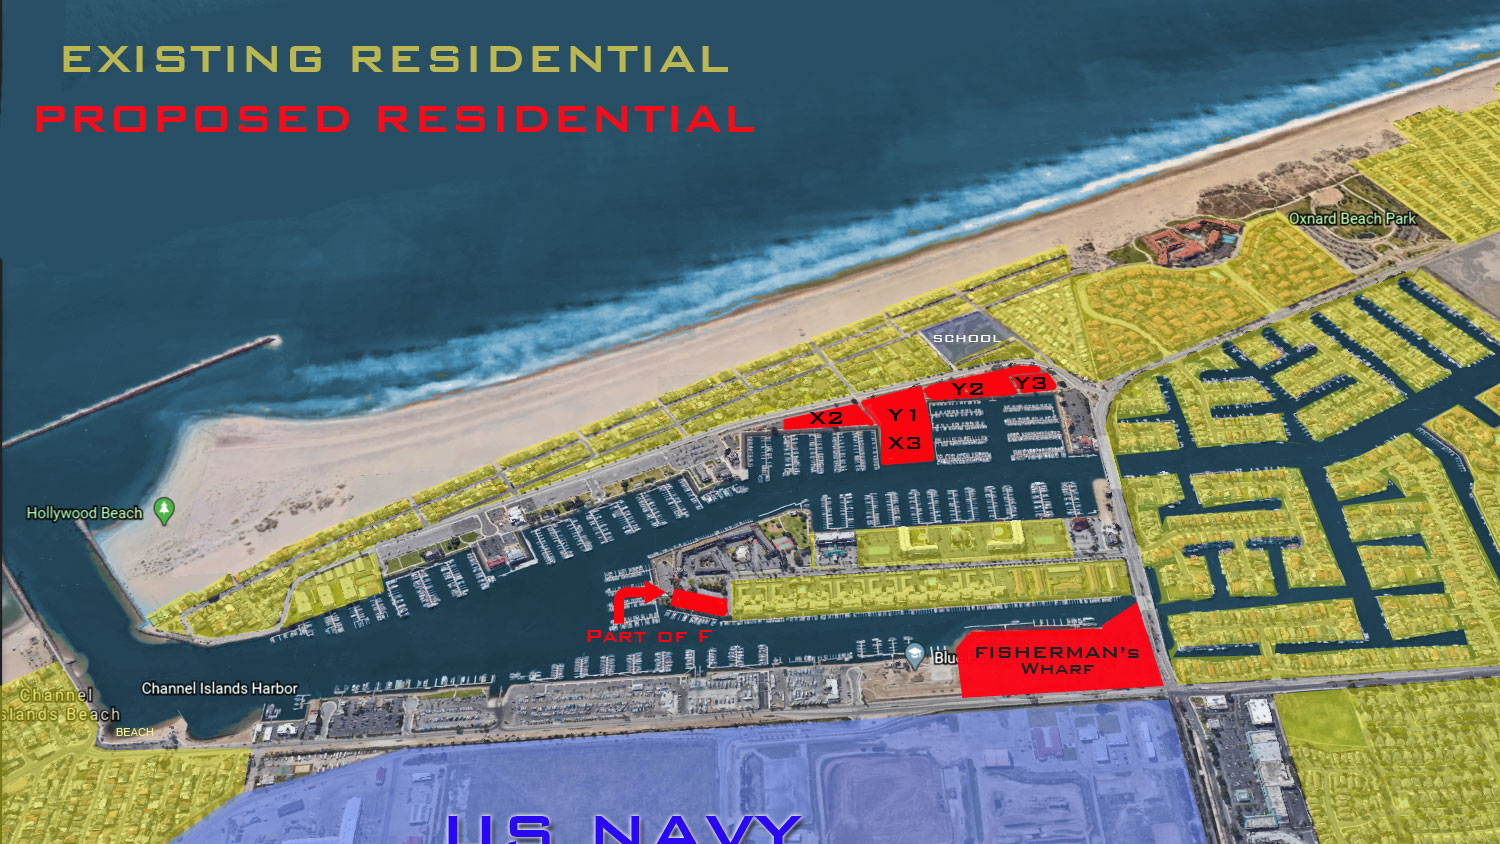 Existing and proposed residential for Fishermans wharf Oxnard